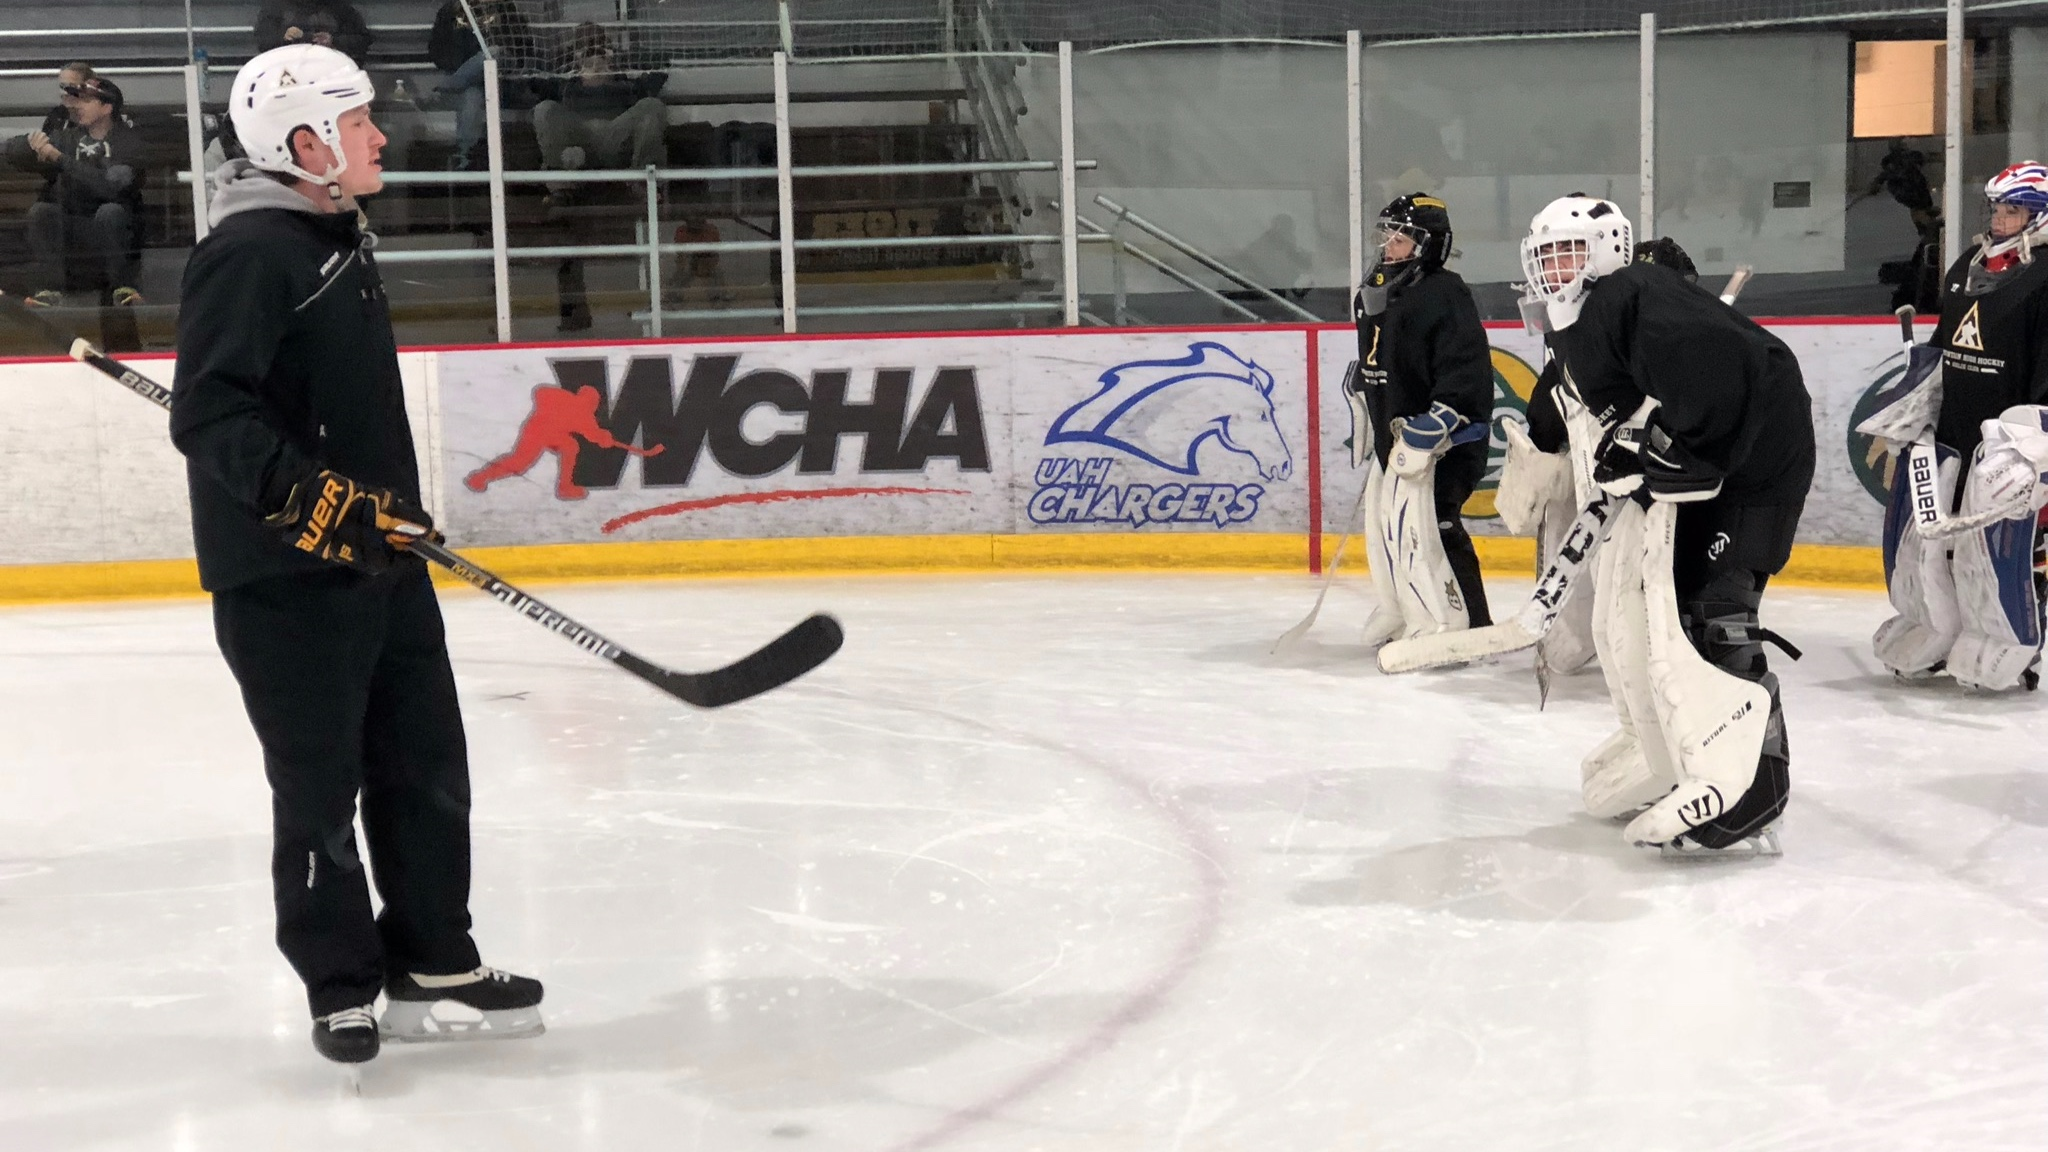 Tate Maris - A Colorado Native, Coach Tate Maris grew up playing youth hockey in Colorado before moving on to the University of North Dakota Fighting Hawks. Coach Maris is currently in his 3rd season coaching for the MHH Goalie Club and has over 10 years of goalie coaching experience working as a main instructor with JPL Goaltending and the REA Hockey Academy in Grand Forks North Dakota. Coach Maris has worked directly under the tutelage of Karl Goehring (current Goalie Coach for the Tampa Bay Lightning AHL team Syracuse Crunch).Coach Maris is currently in his second season, serving as goalie coach for the Colorado College Tigers of the NCHC.